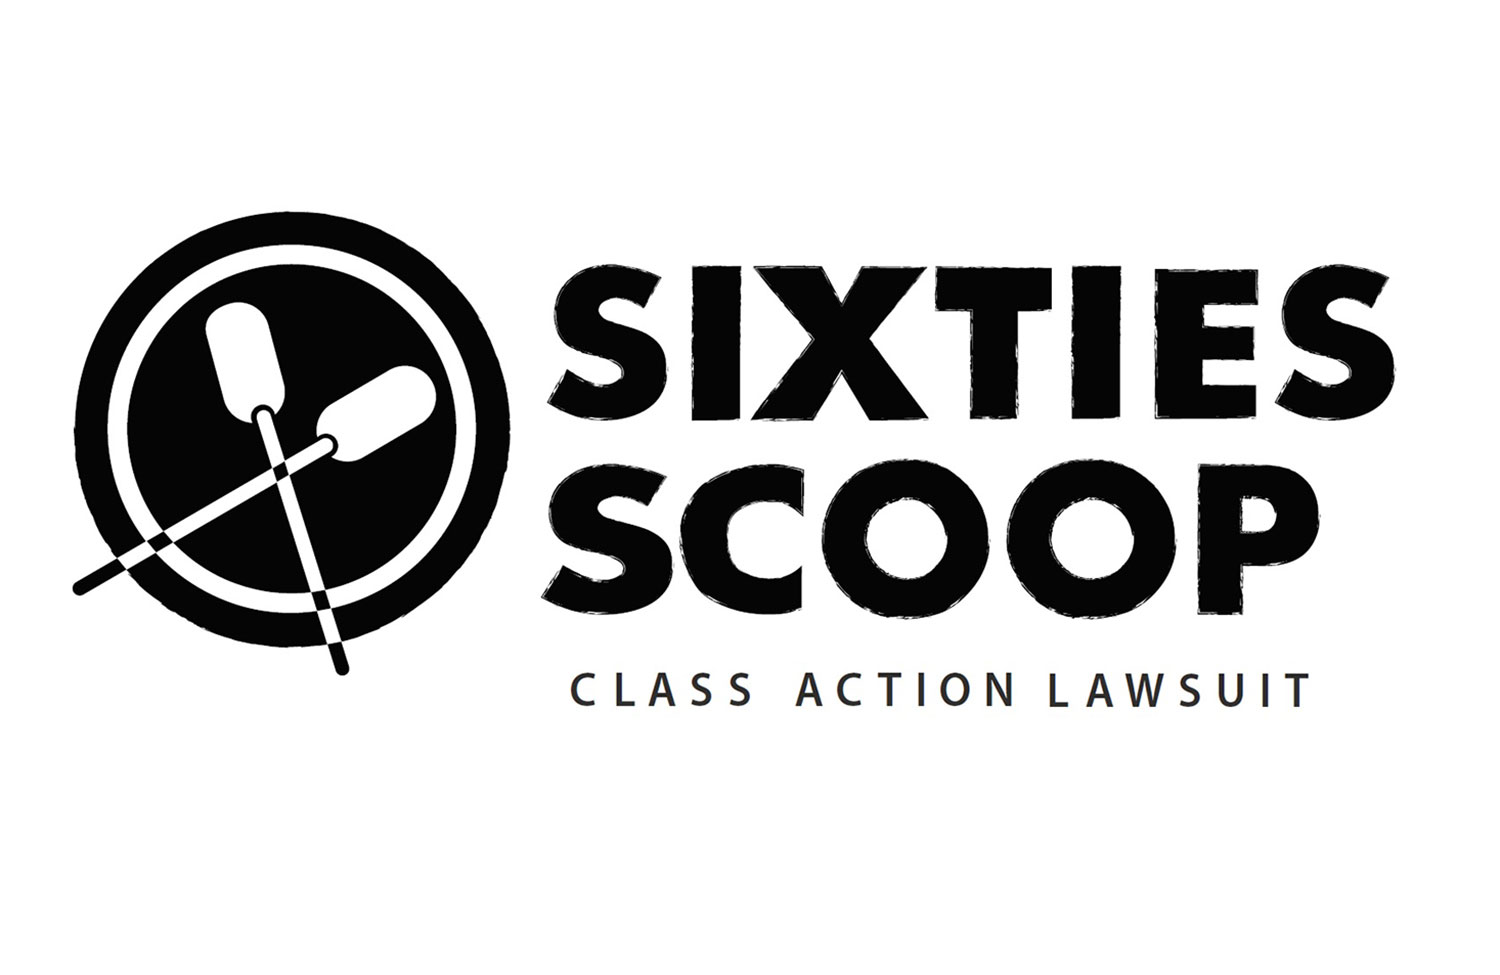 THE APPLICATION DEADLINE FOR THE SIXTIES SCOOP CLASS ACTION IS AUGUST 30, 2019